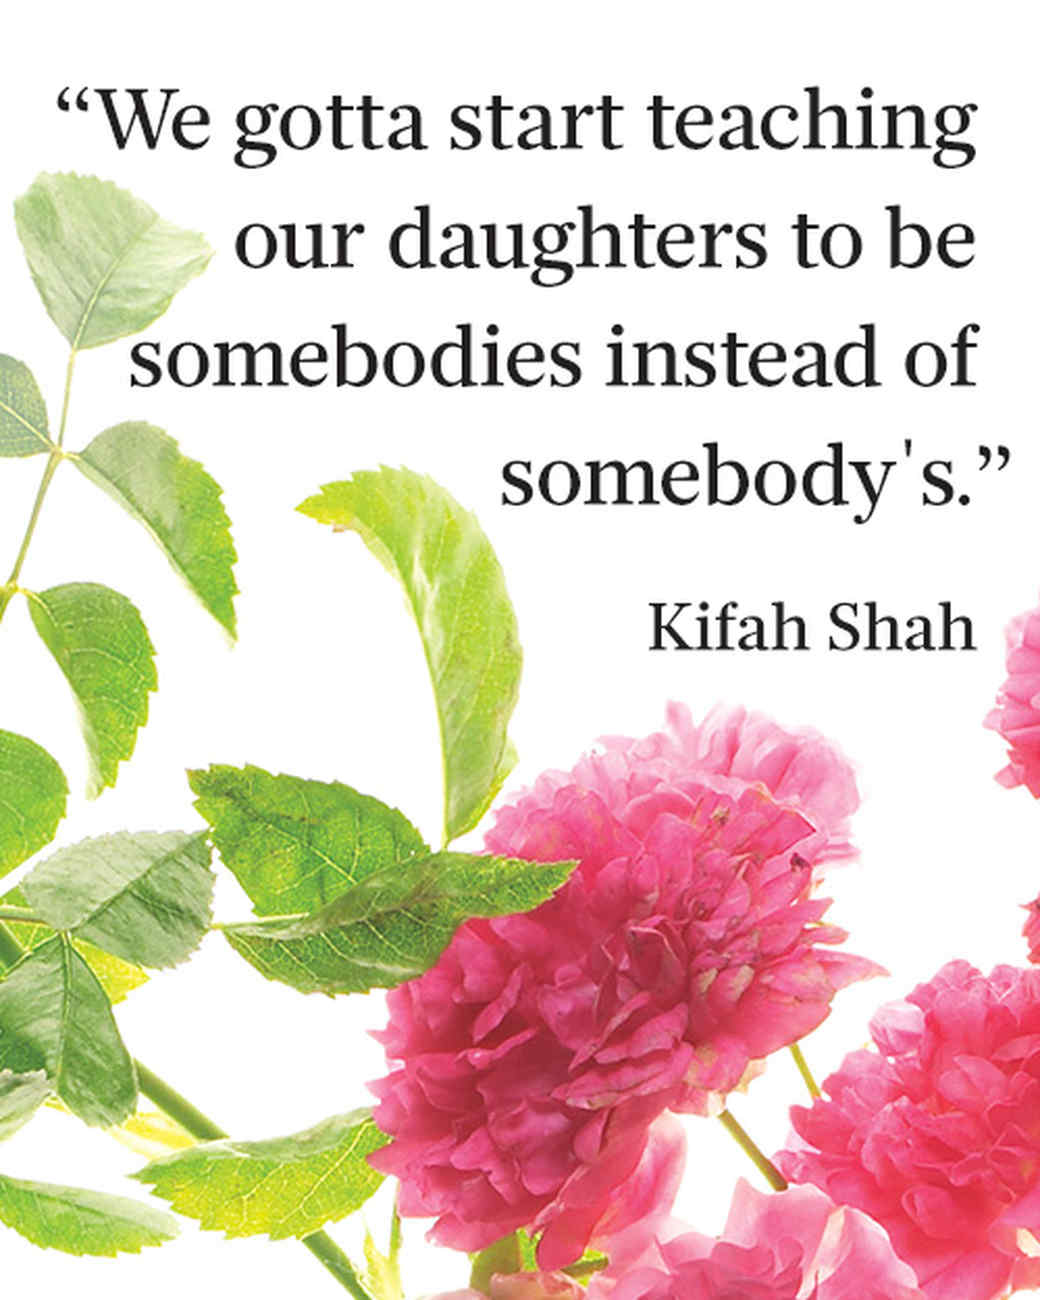 mothersdayquotes8-0315.jpg